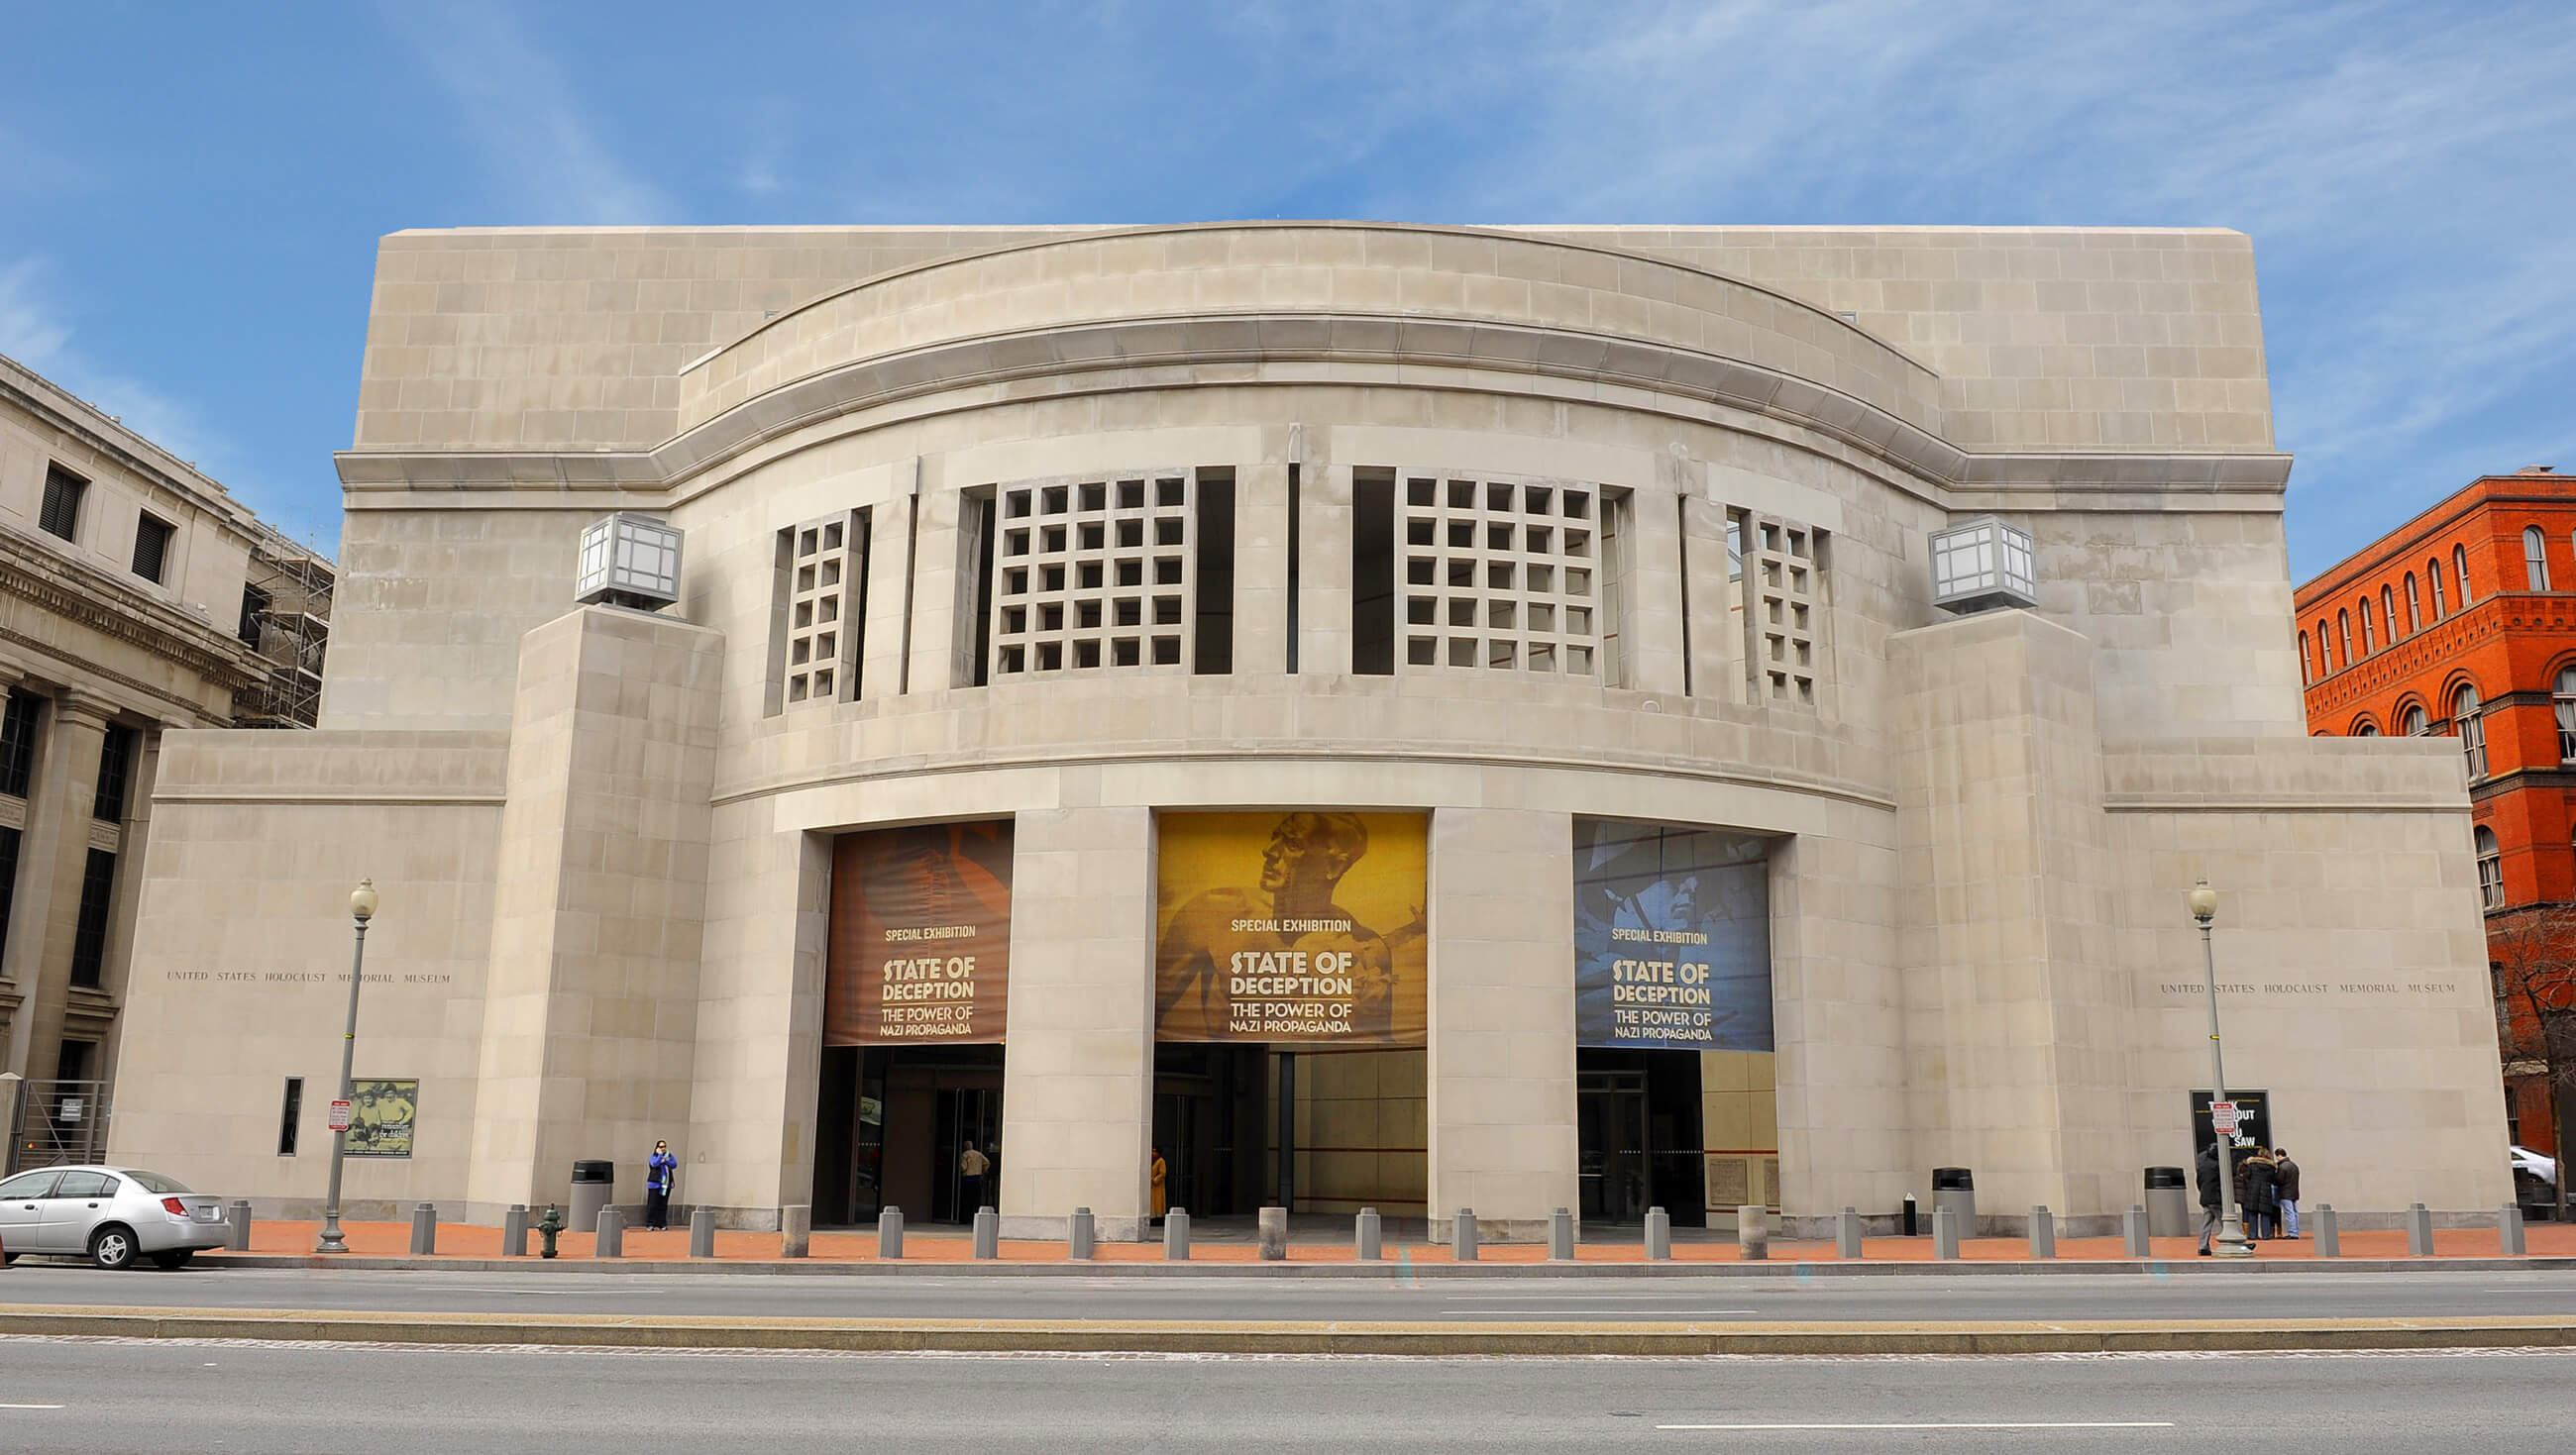 Front view of the United States Holocaust Memorial Museum, characterized by an imposing and monumental, geometric stone presence.